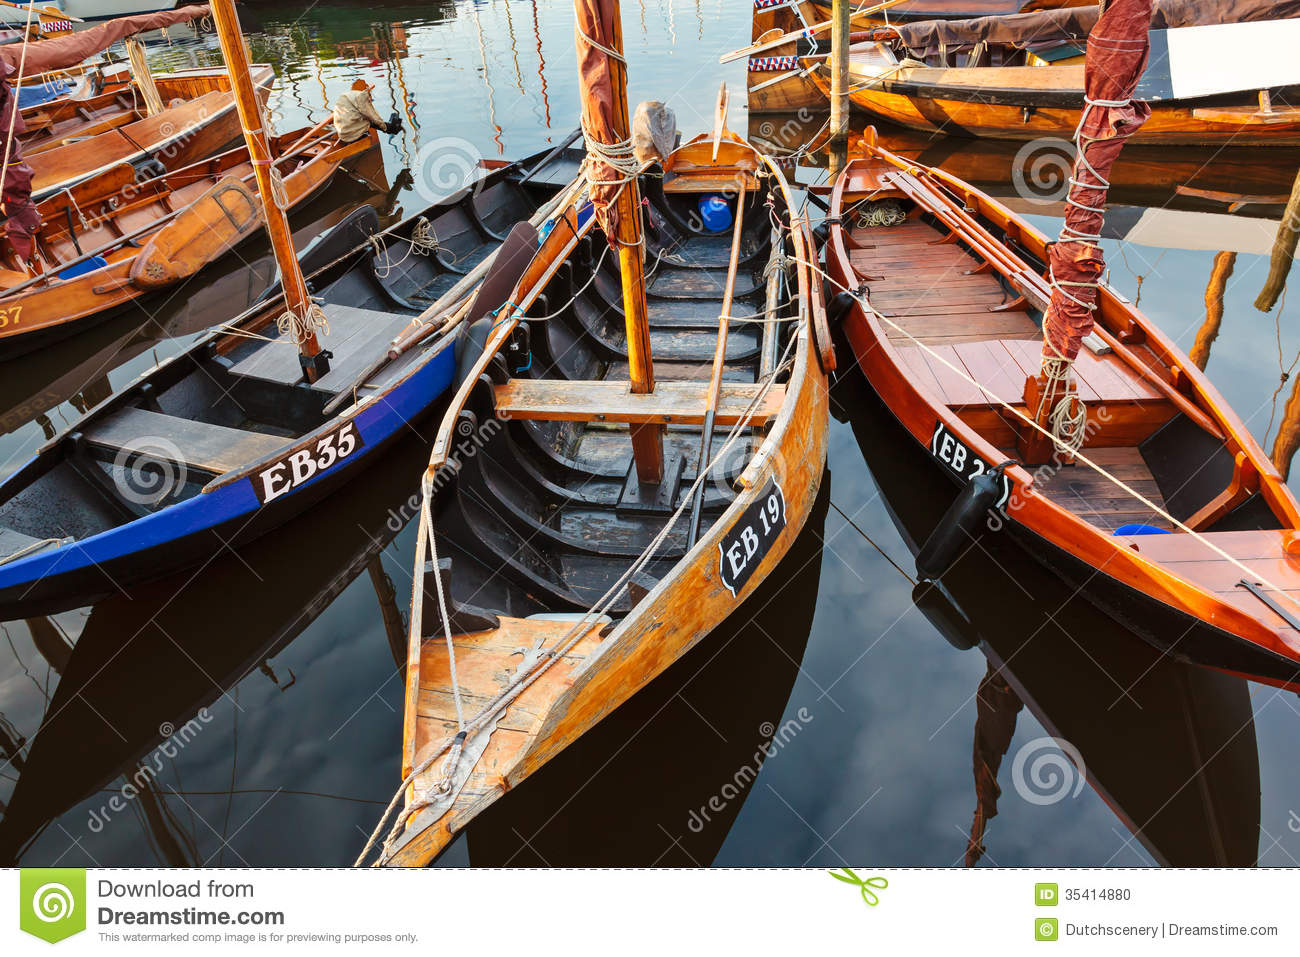 Small Old Wooden Fishing Boats In The Netherlands Stock Photo - Image: 35414880